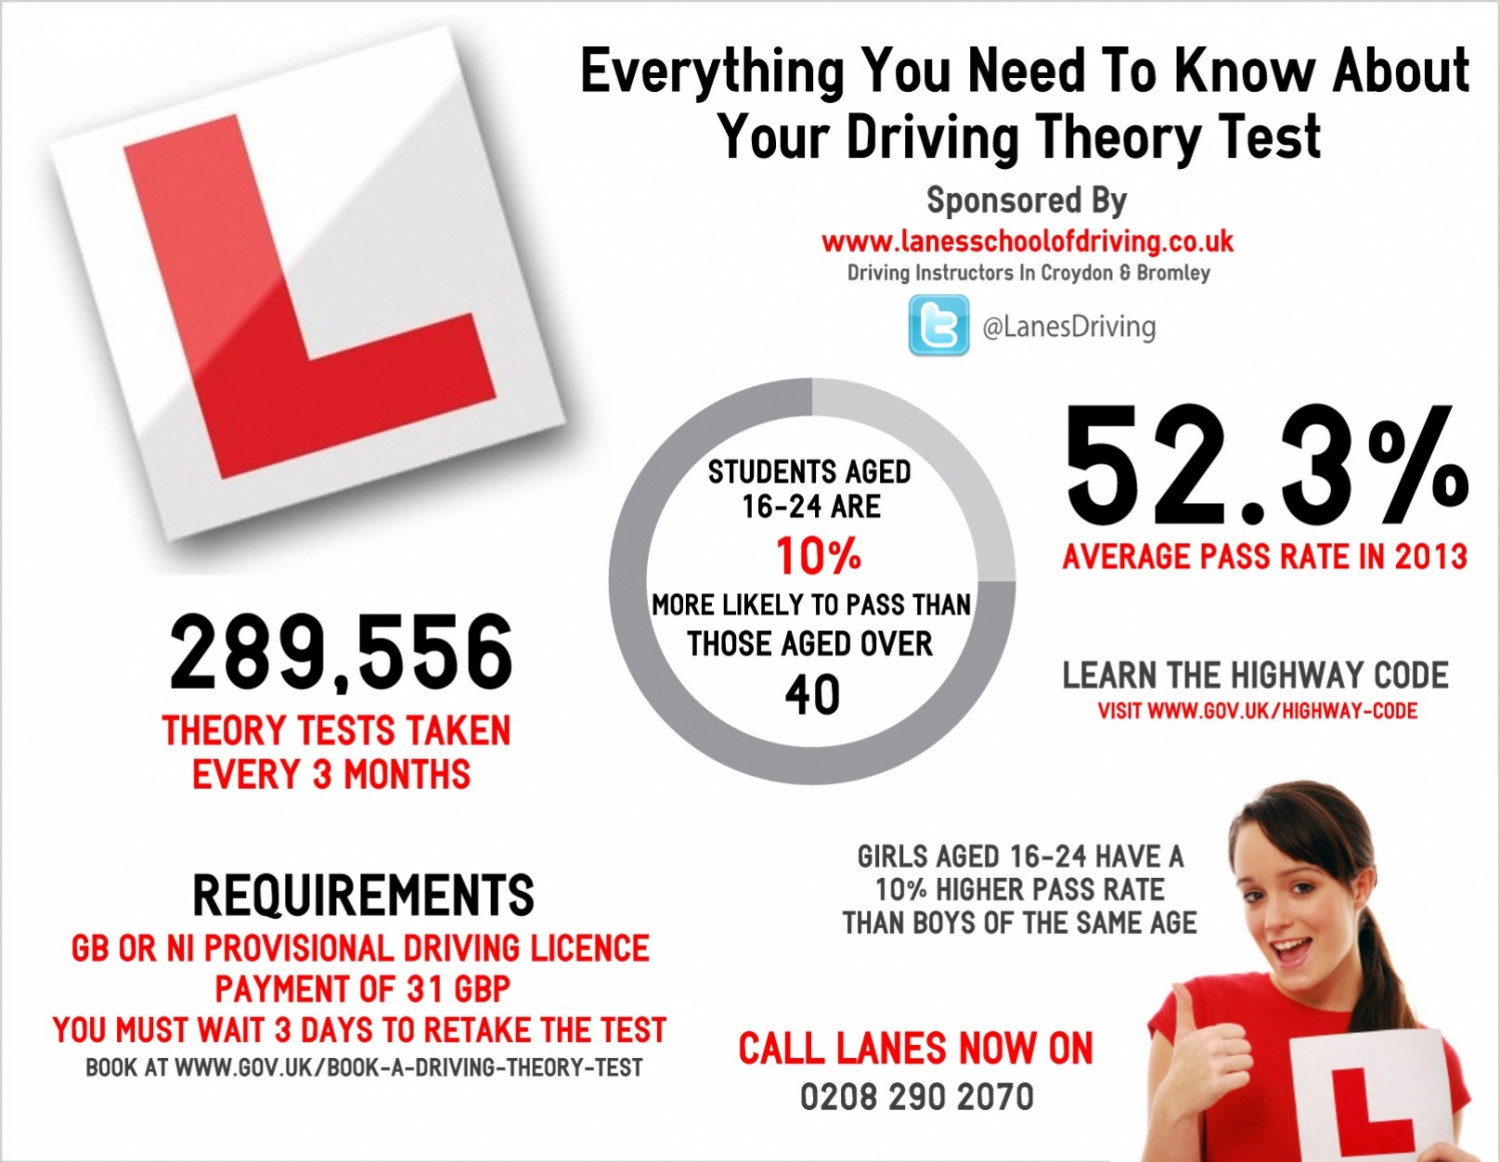 Everything You Need To Know About Your Driving Theory Test Infographic